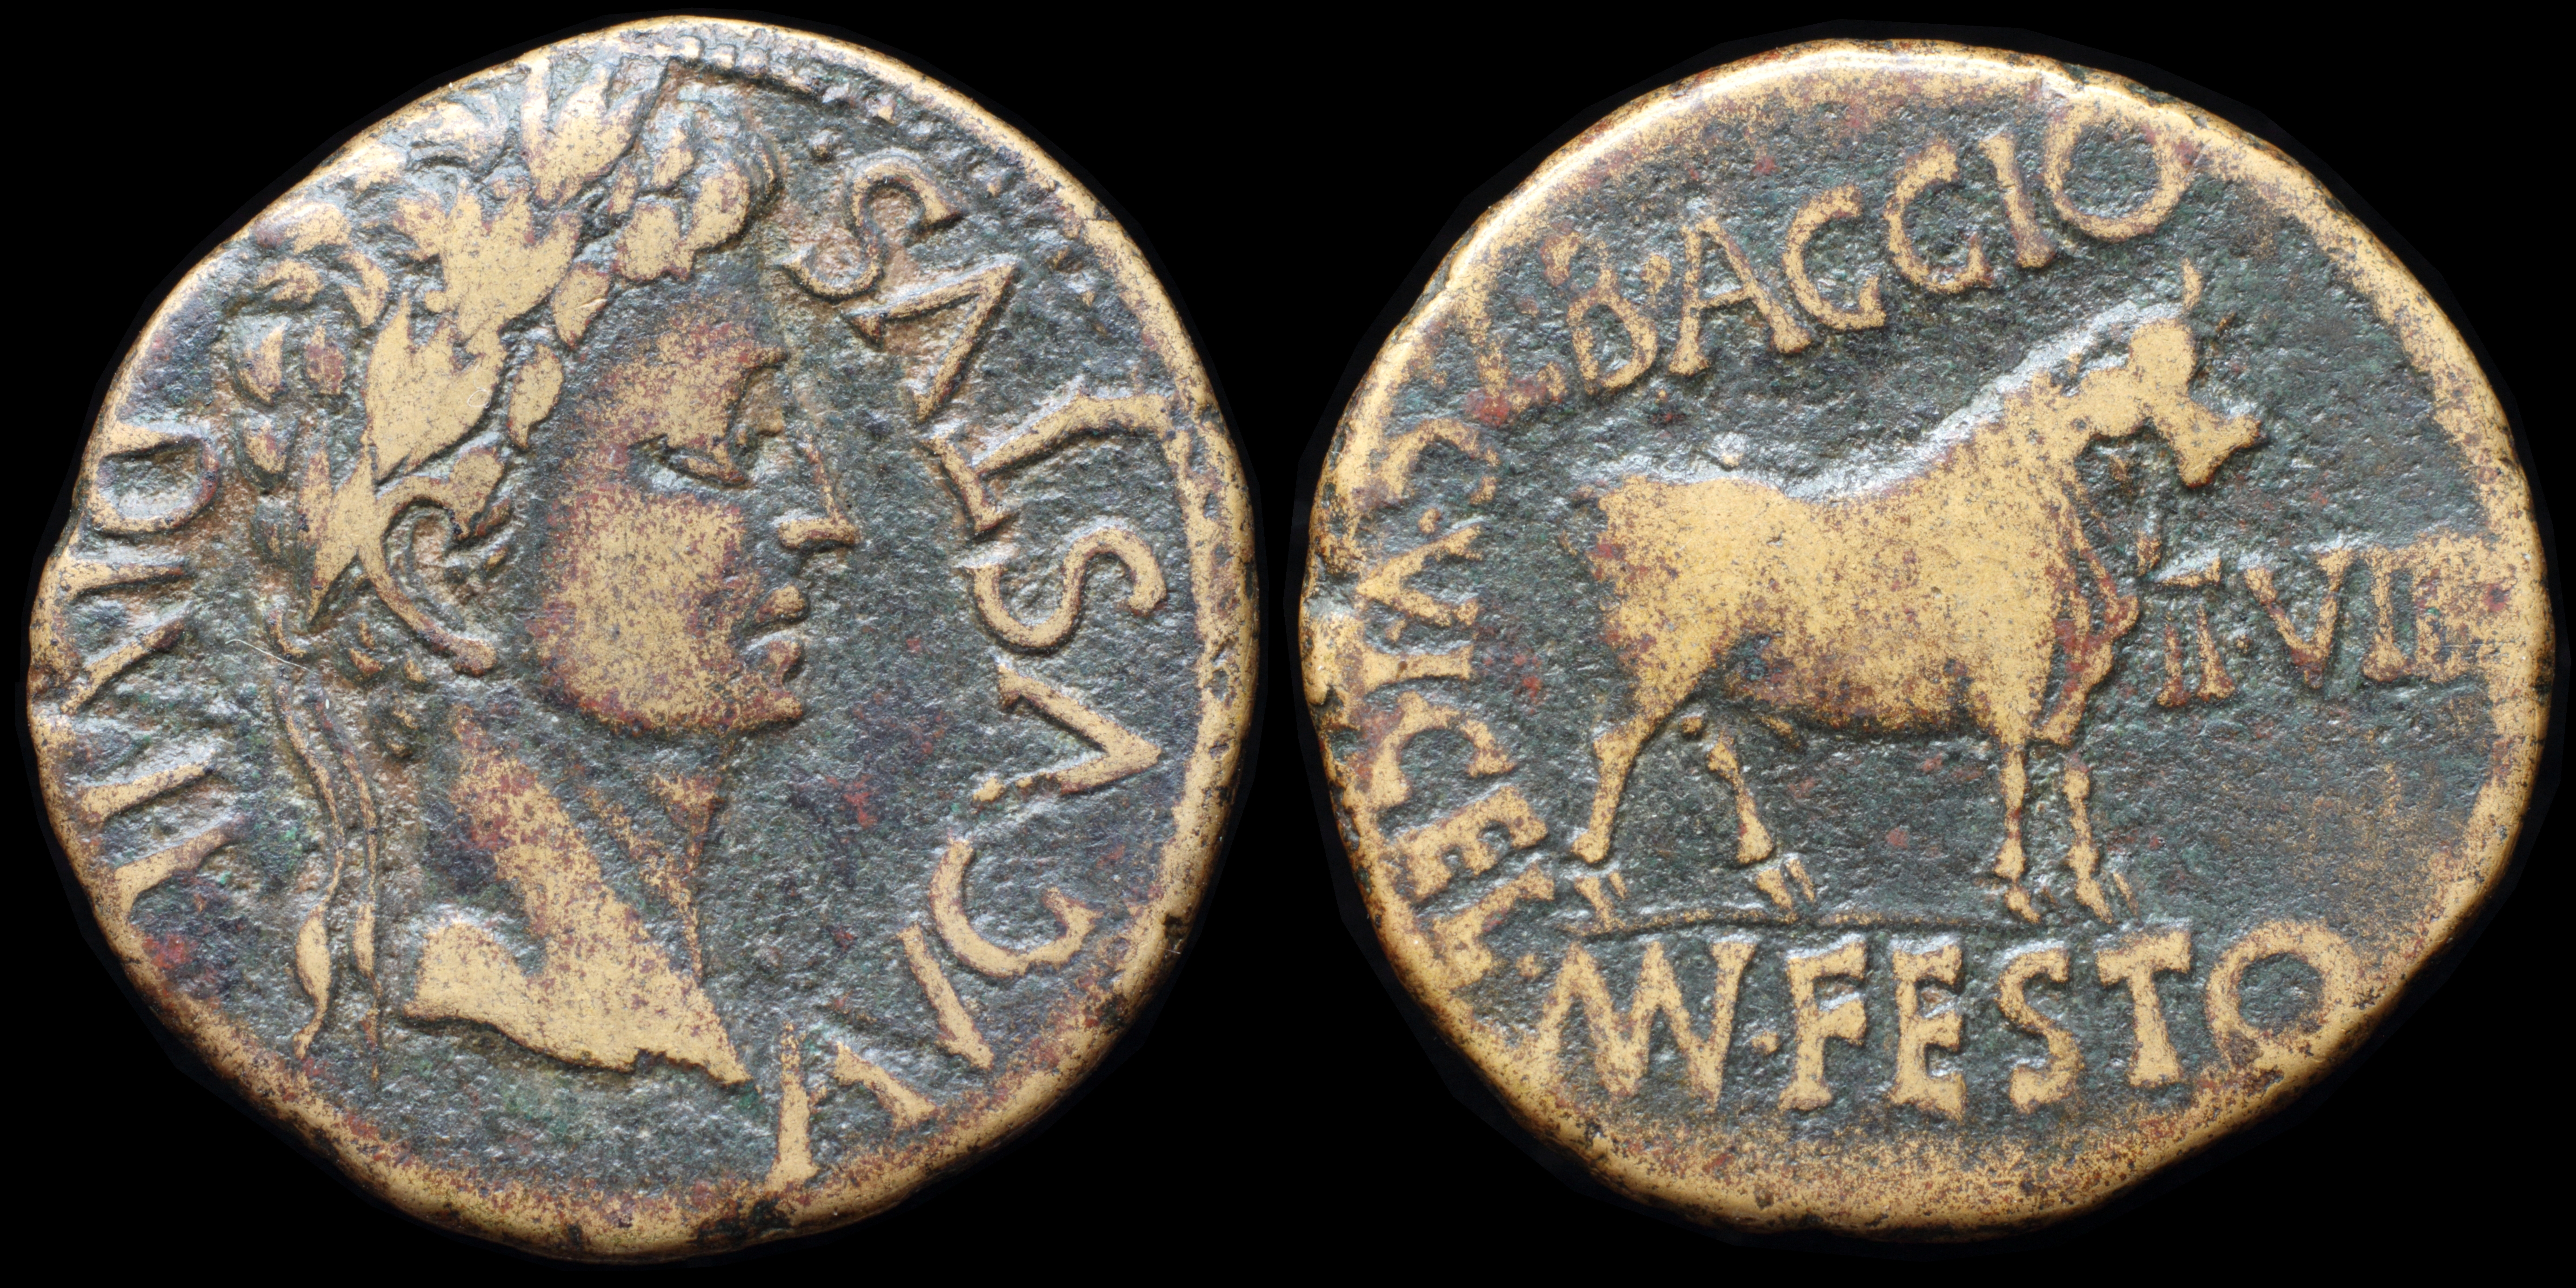 /Files/Images/Coinsite/CoinDB/849_Augustus_Celsa.JPG